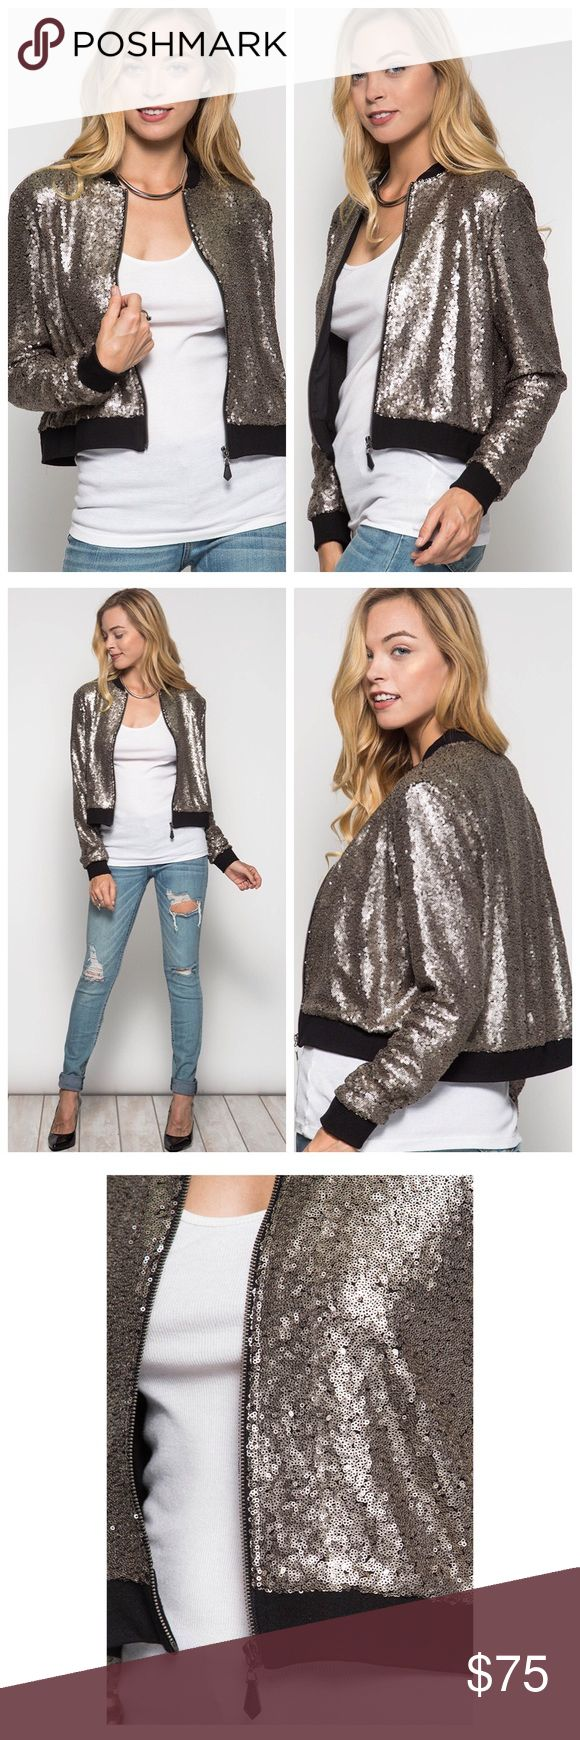 Mate sequin bomber jacket Mate gold sequin bomber jacket Jackets & Coats